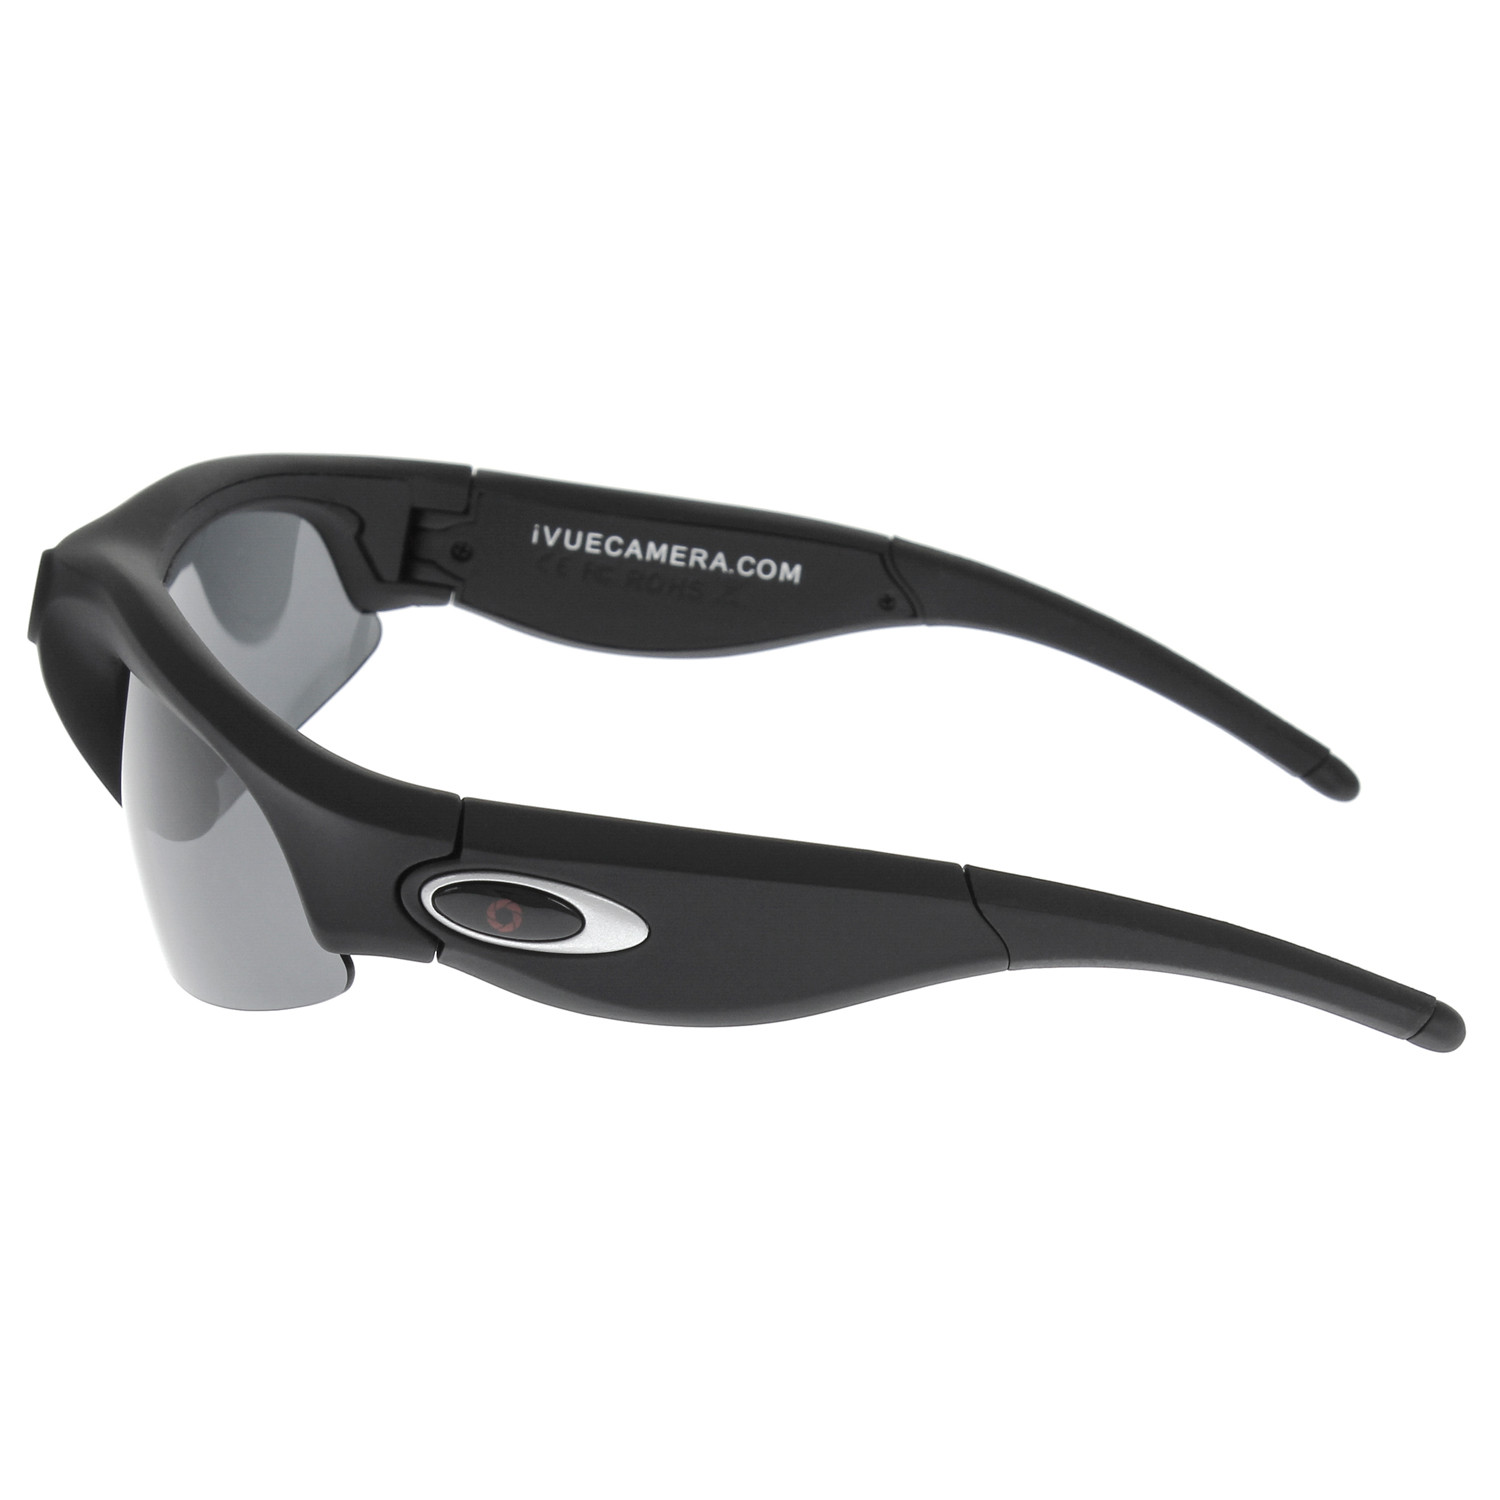 Ivue crossfire action glasses